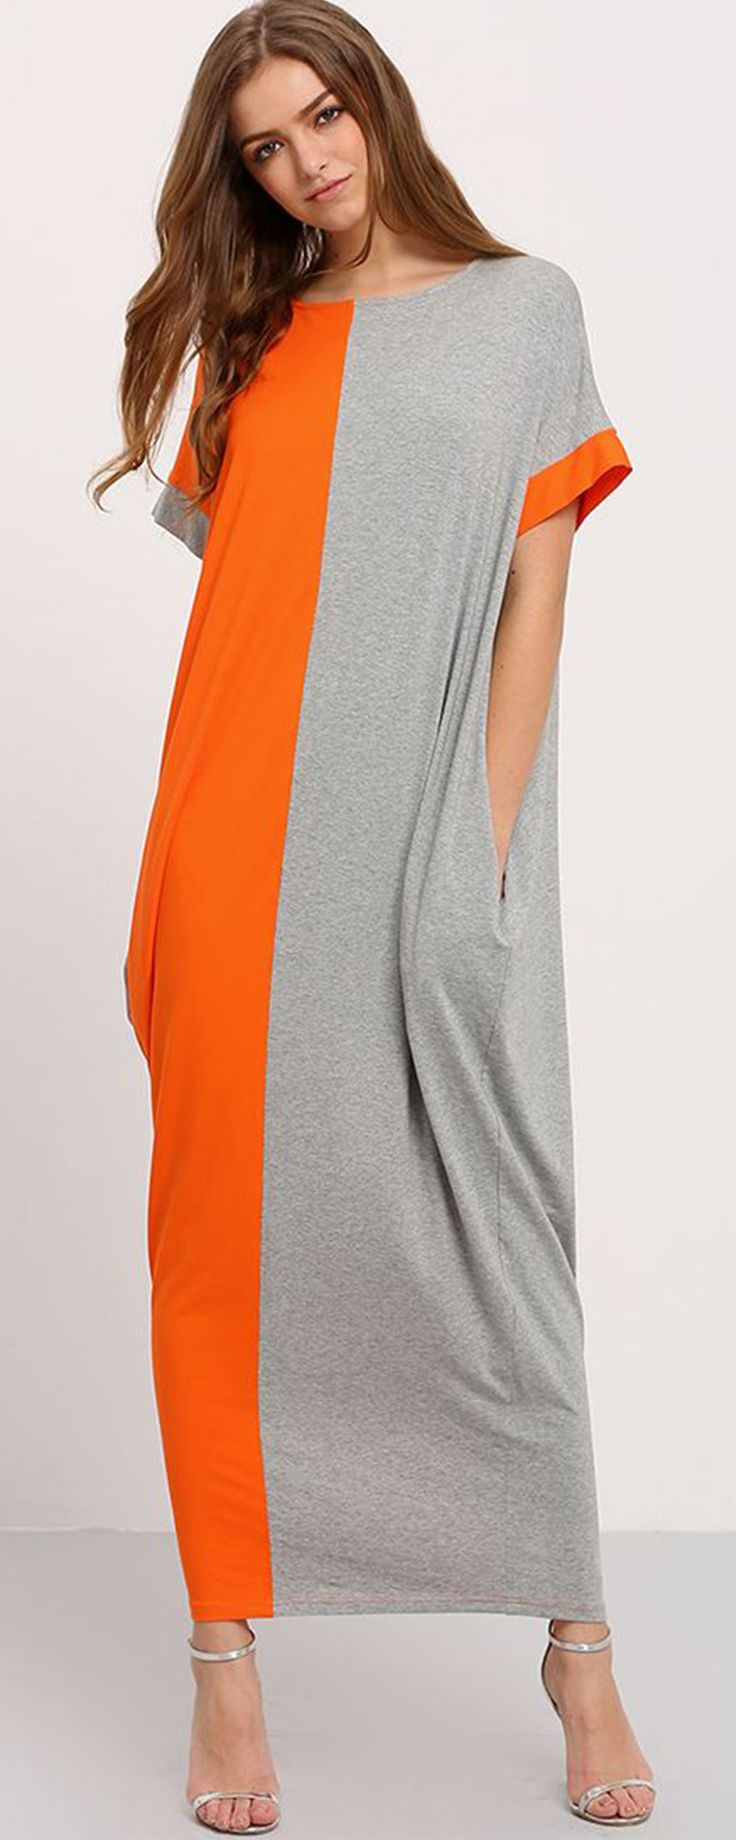 Grey Orange Contrast Pockets Maxi Dress